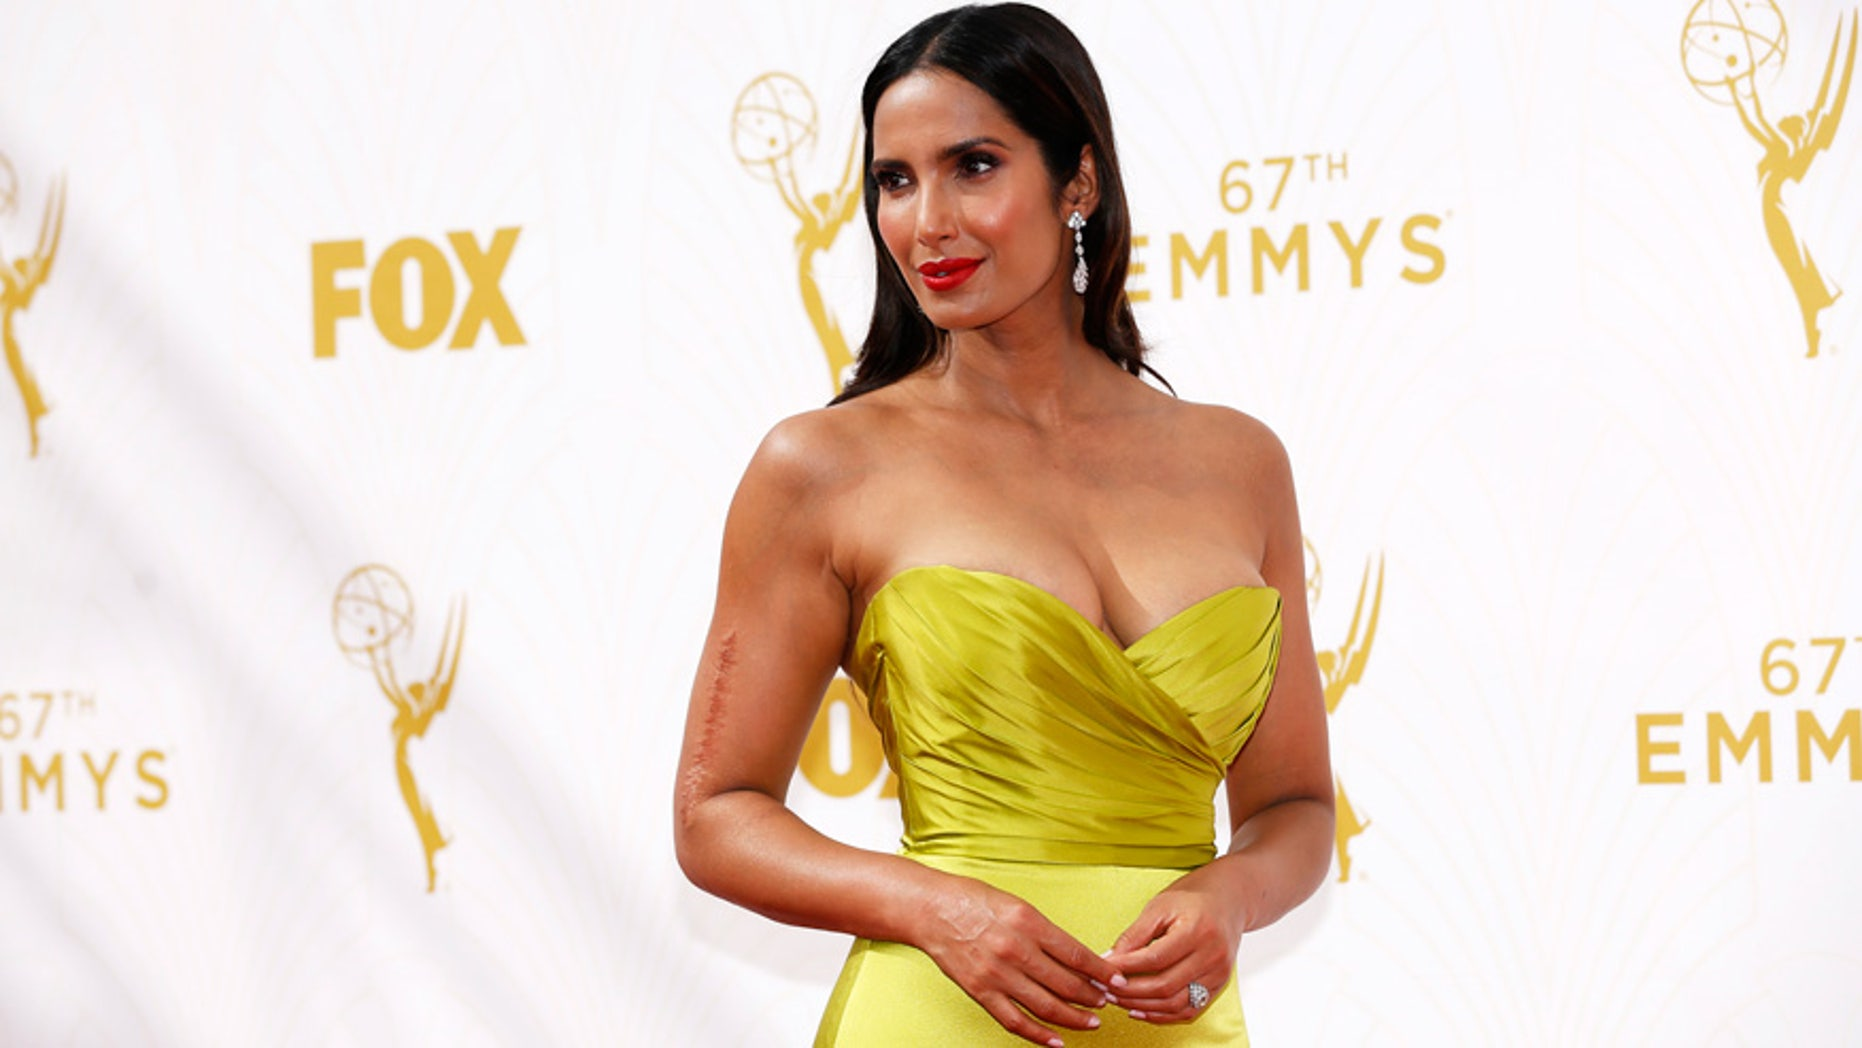 """Top Chef"" host Padma Lakshmi arrives at the 67th Primetime Emmy Awards in Los Angeles in 2015."